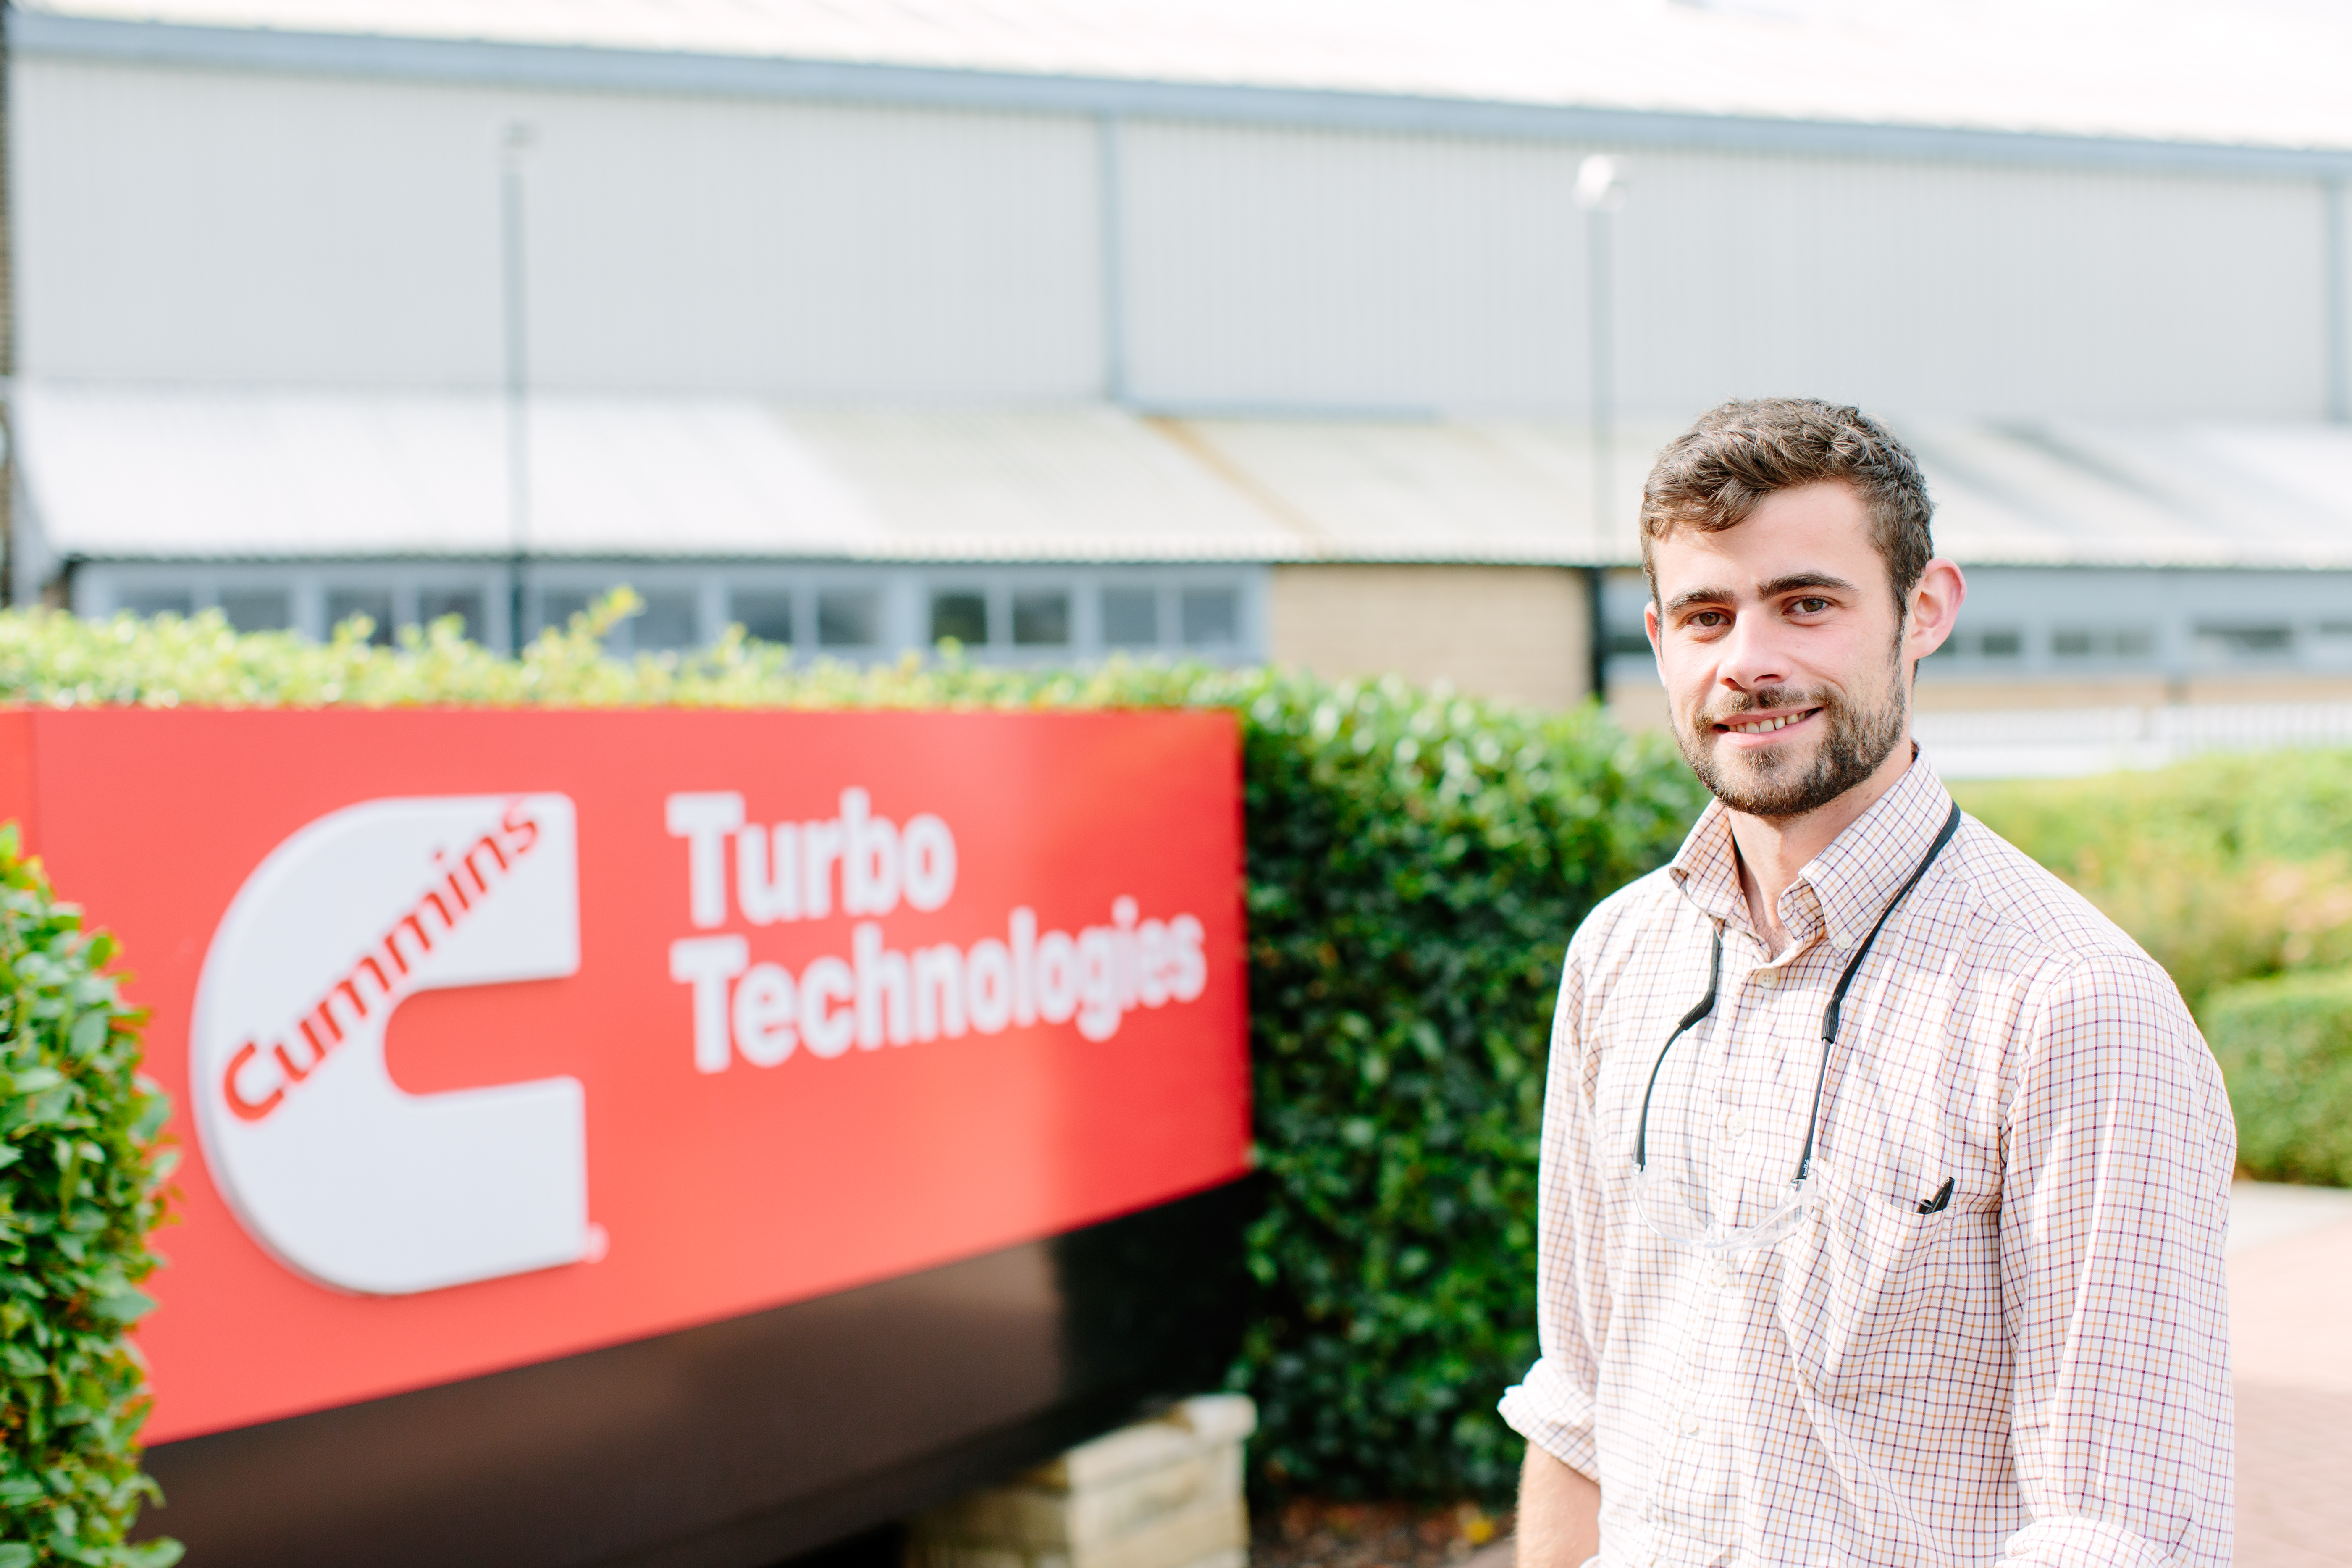 Mike Scott on his industrial placement at Turbo Technologies